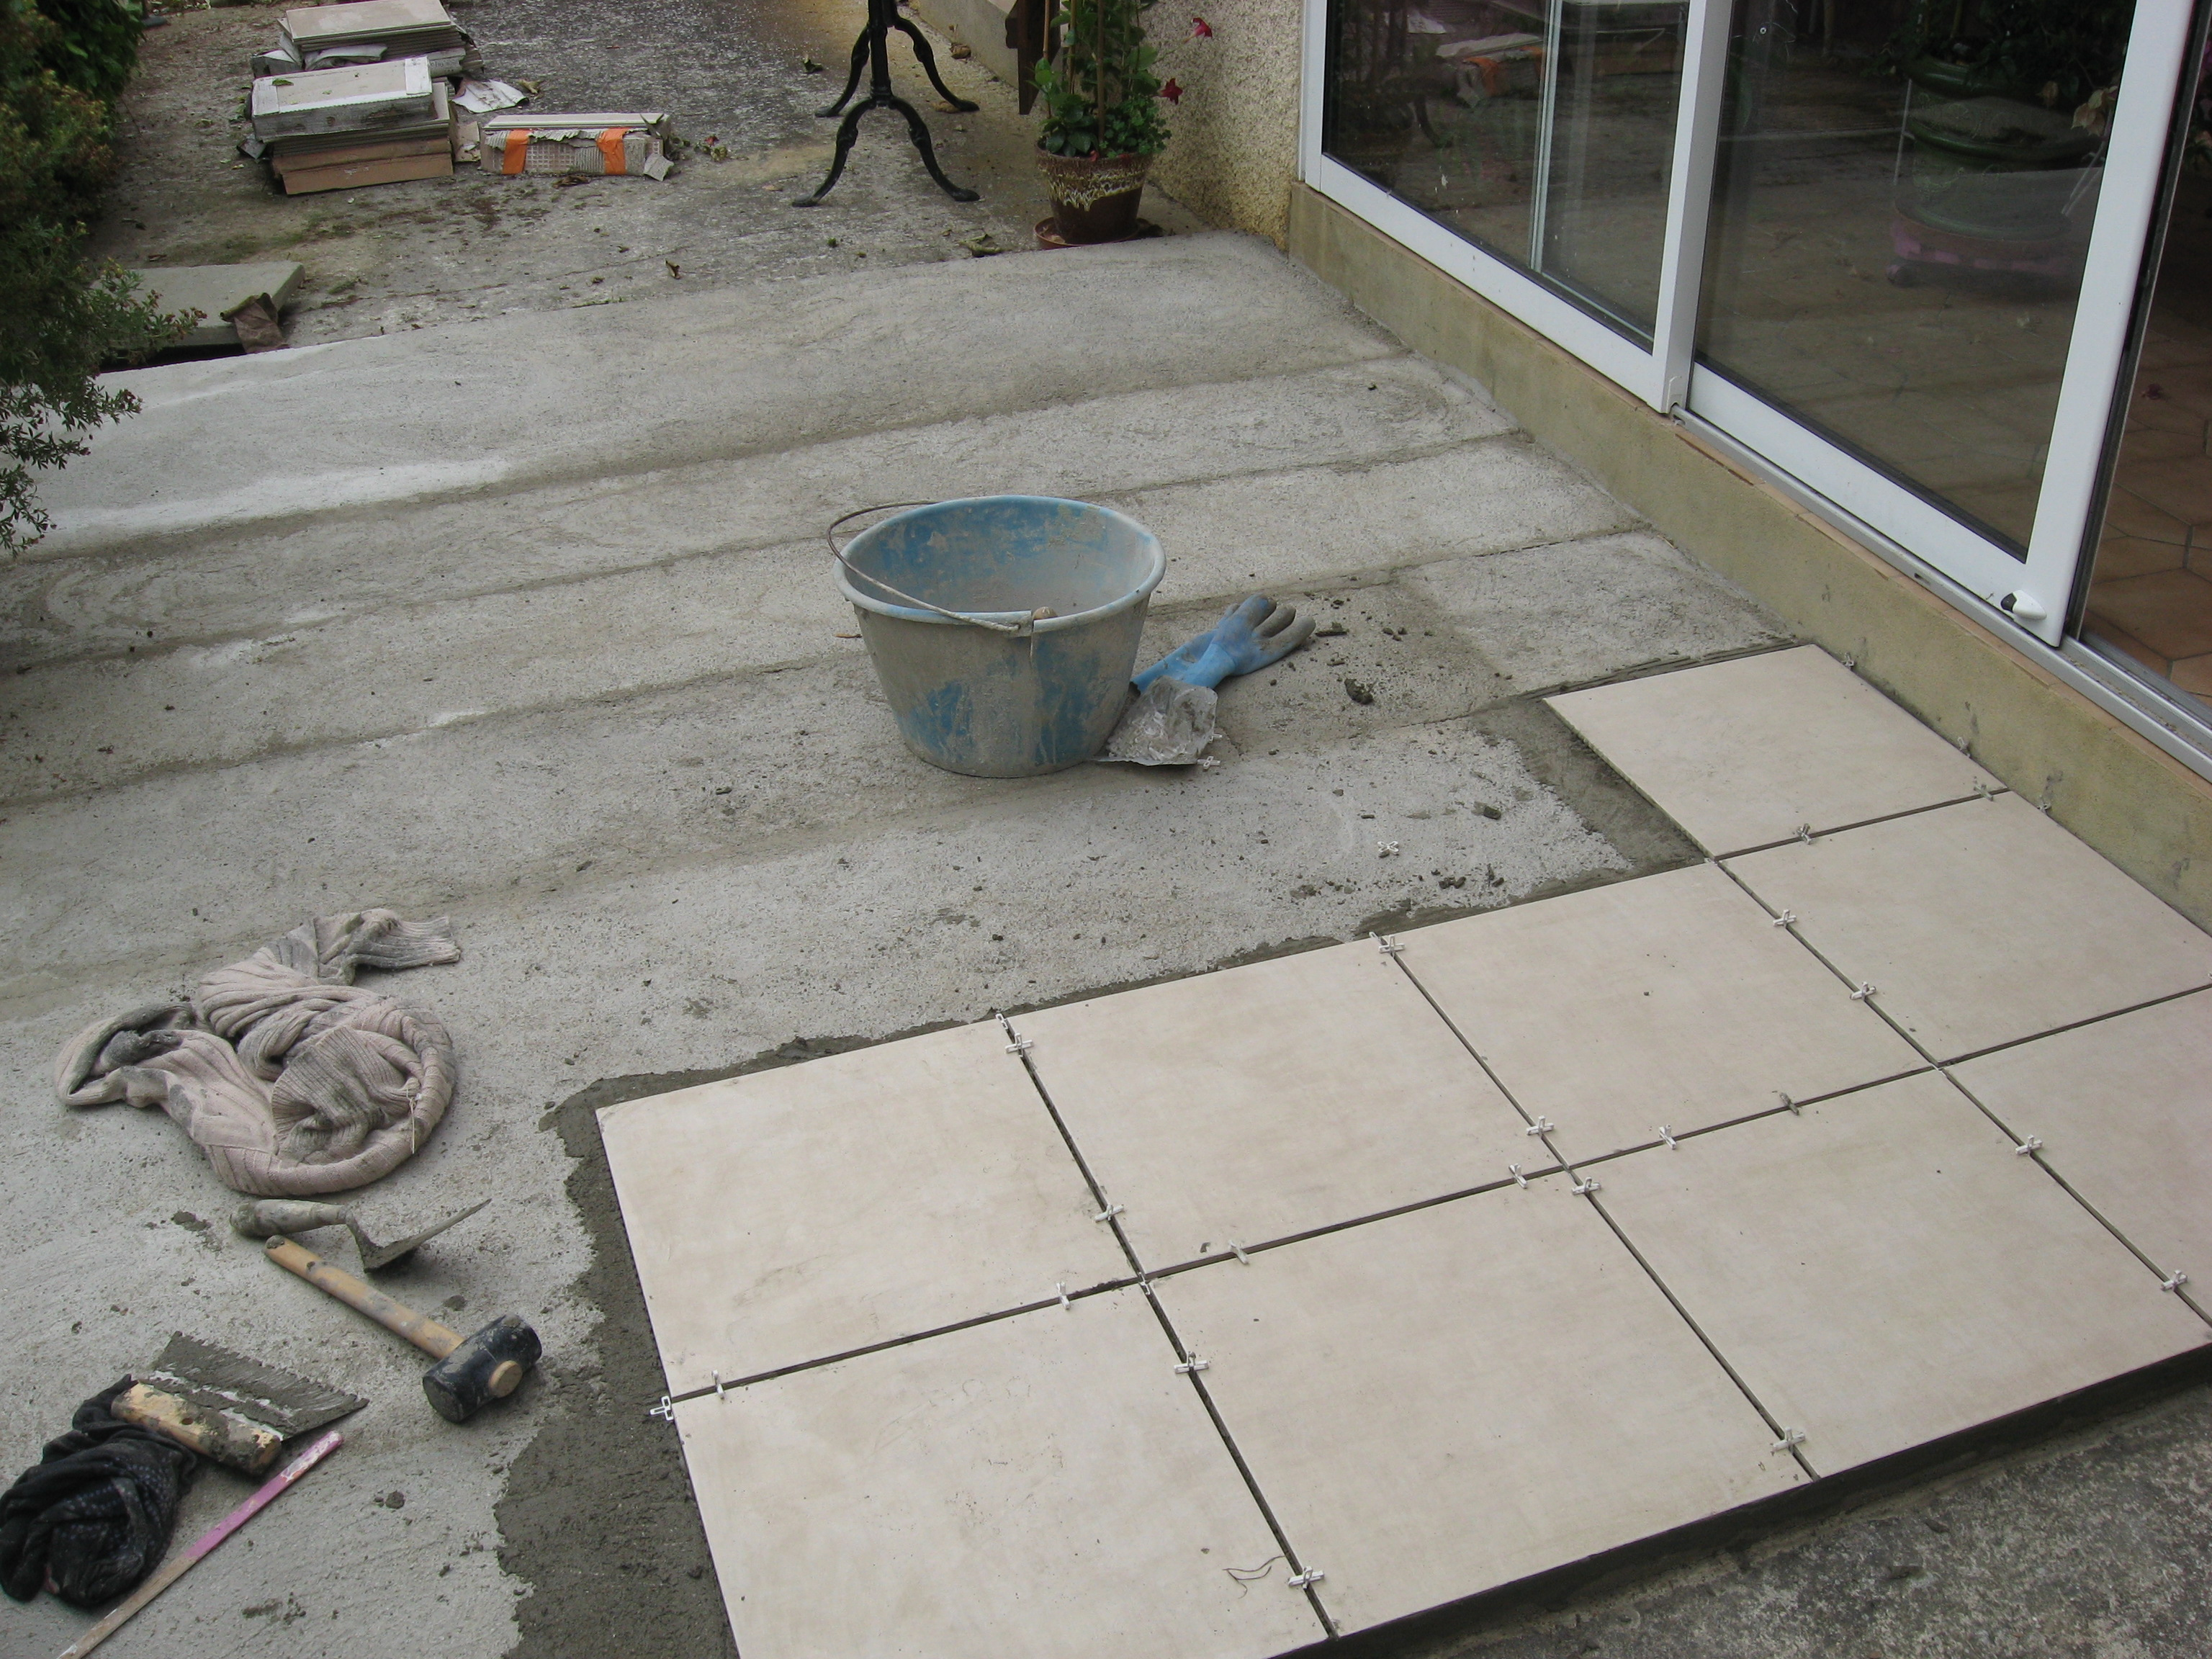 Carrelage sur terrasse nini d co for Poser carrelage terrasse dalle beton